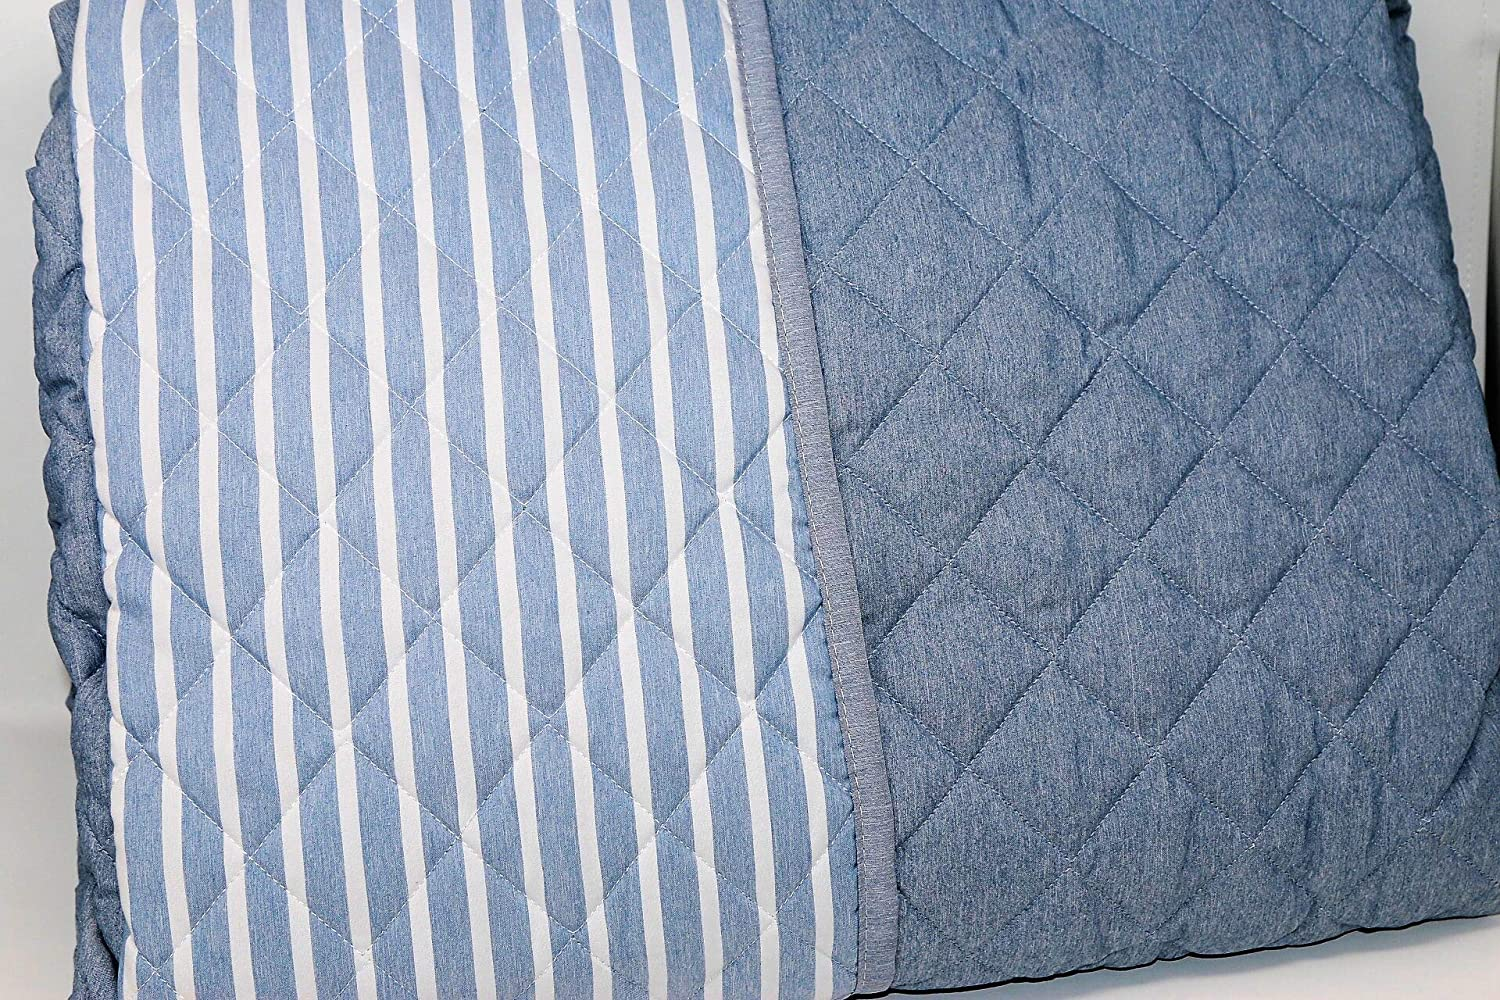 170x260 taupe Dream cm Quilted Bedspread//Quilt for Single Bed Medium Season Dyed Thread and Double-Sided 100 g//m2 Hypoallergenic GF Ferrari Art